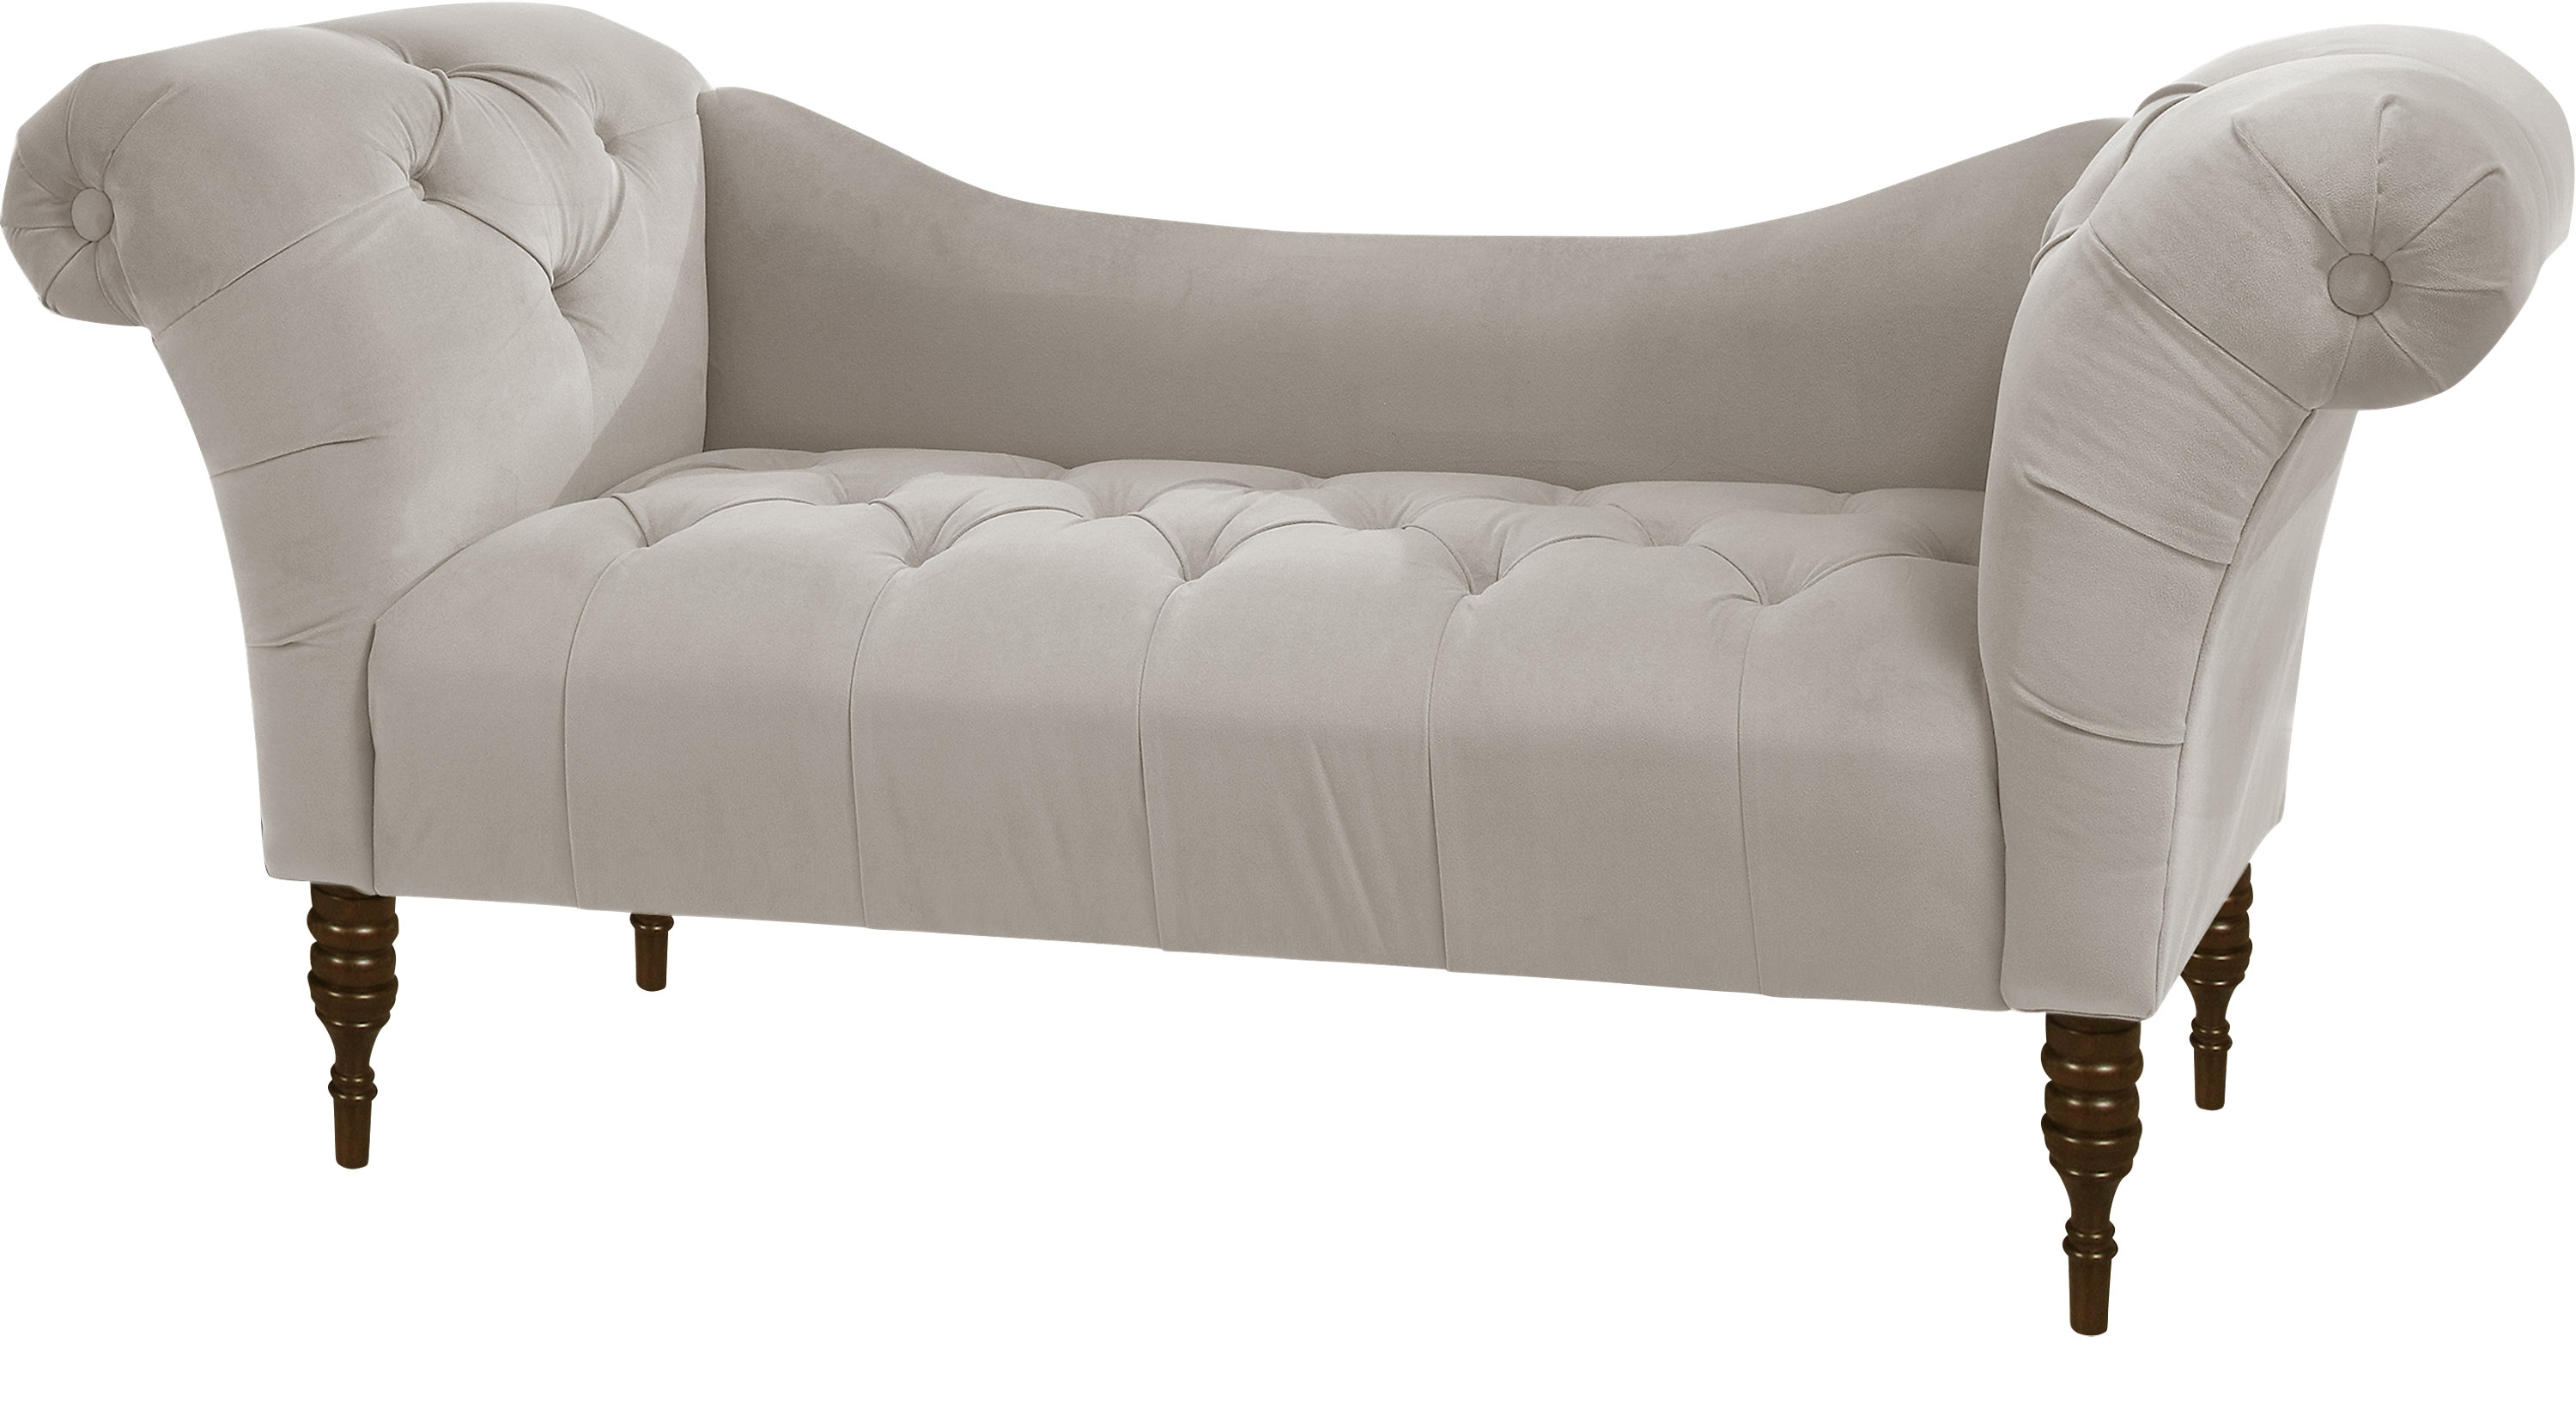 Widely Used Chaises – Chaise Lounge Sofas With Emily Chaises (View 15 of 15)